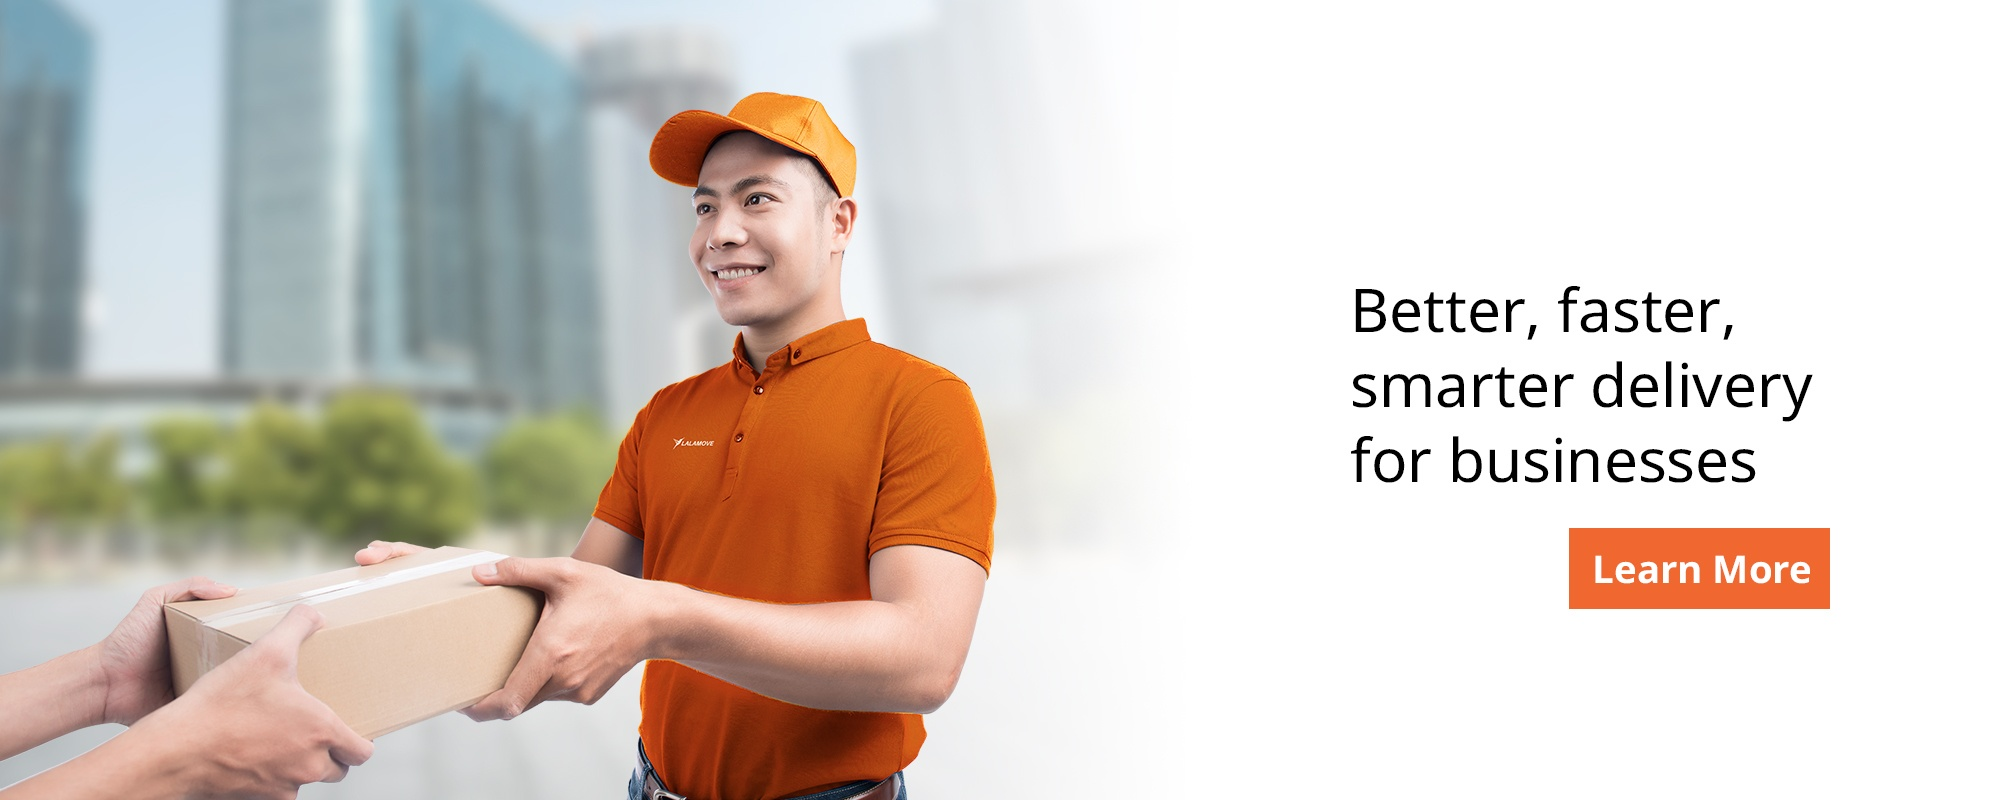 Lalamove Singapore, better, faster and smarter delivery for businesses